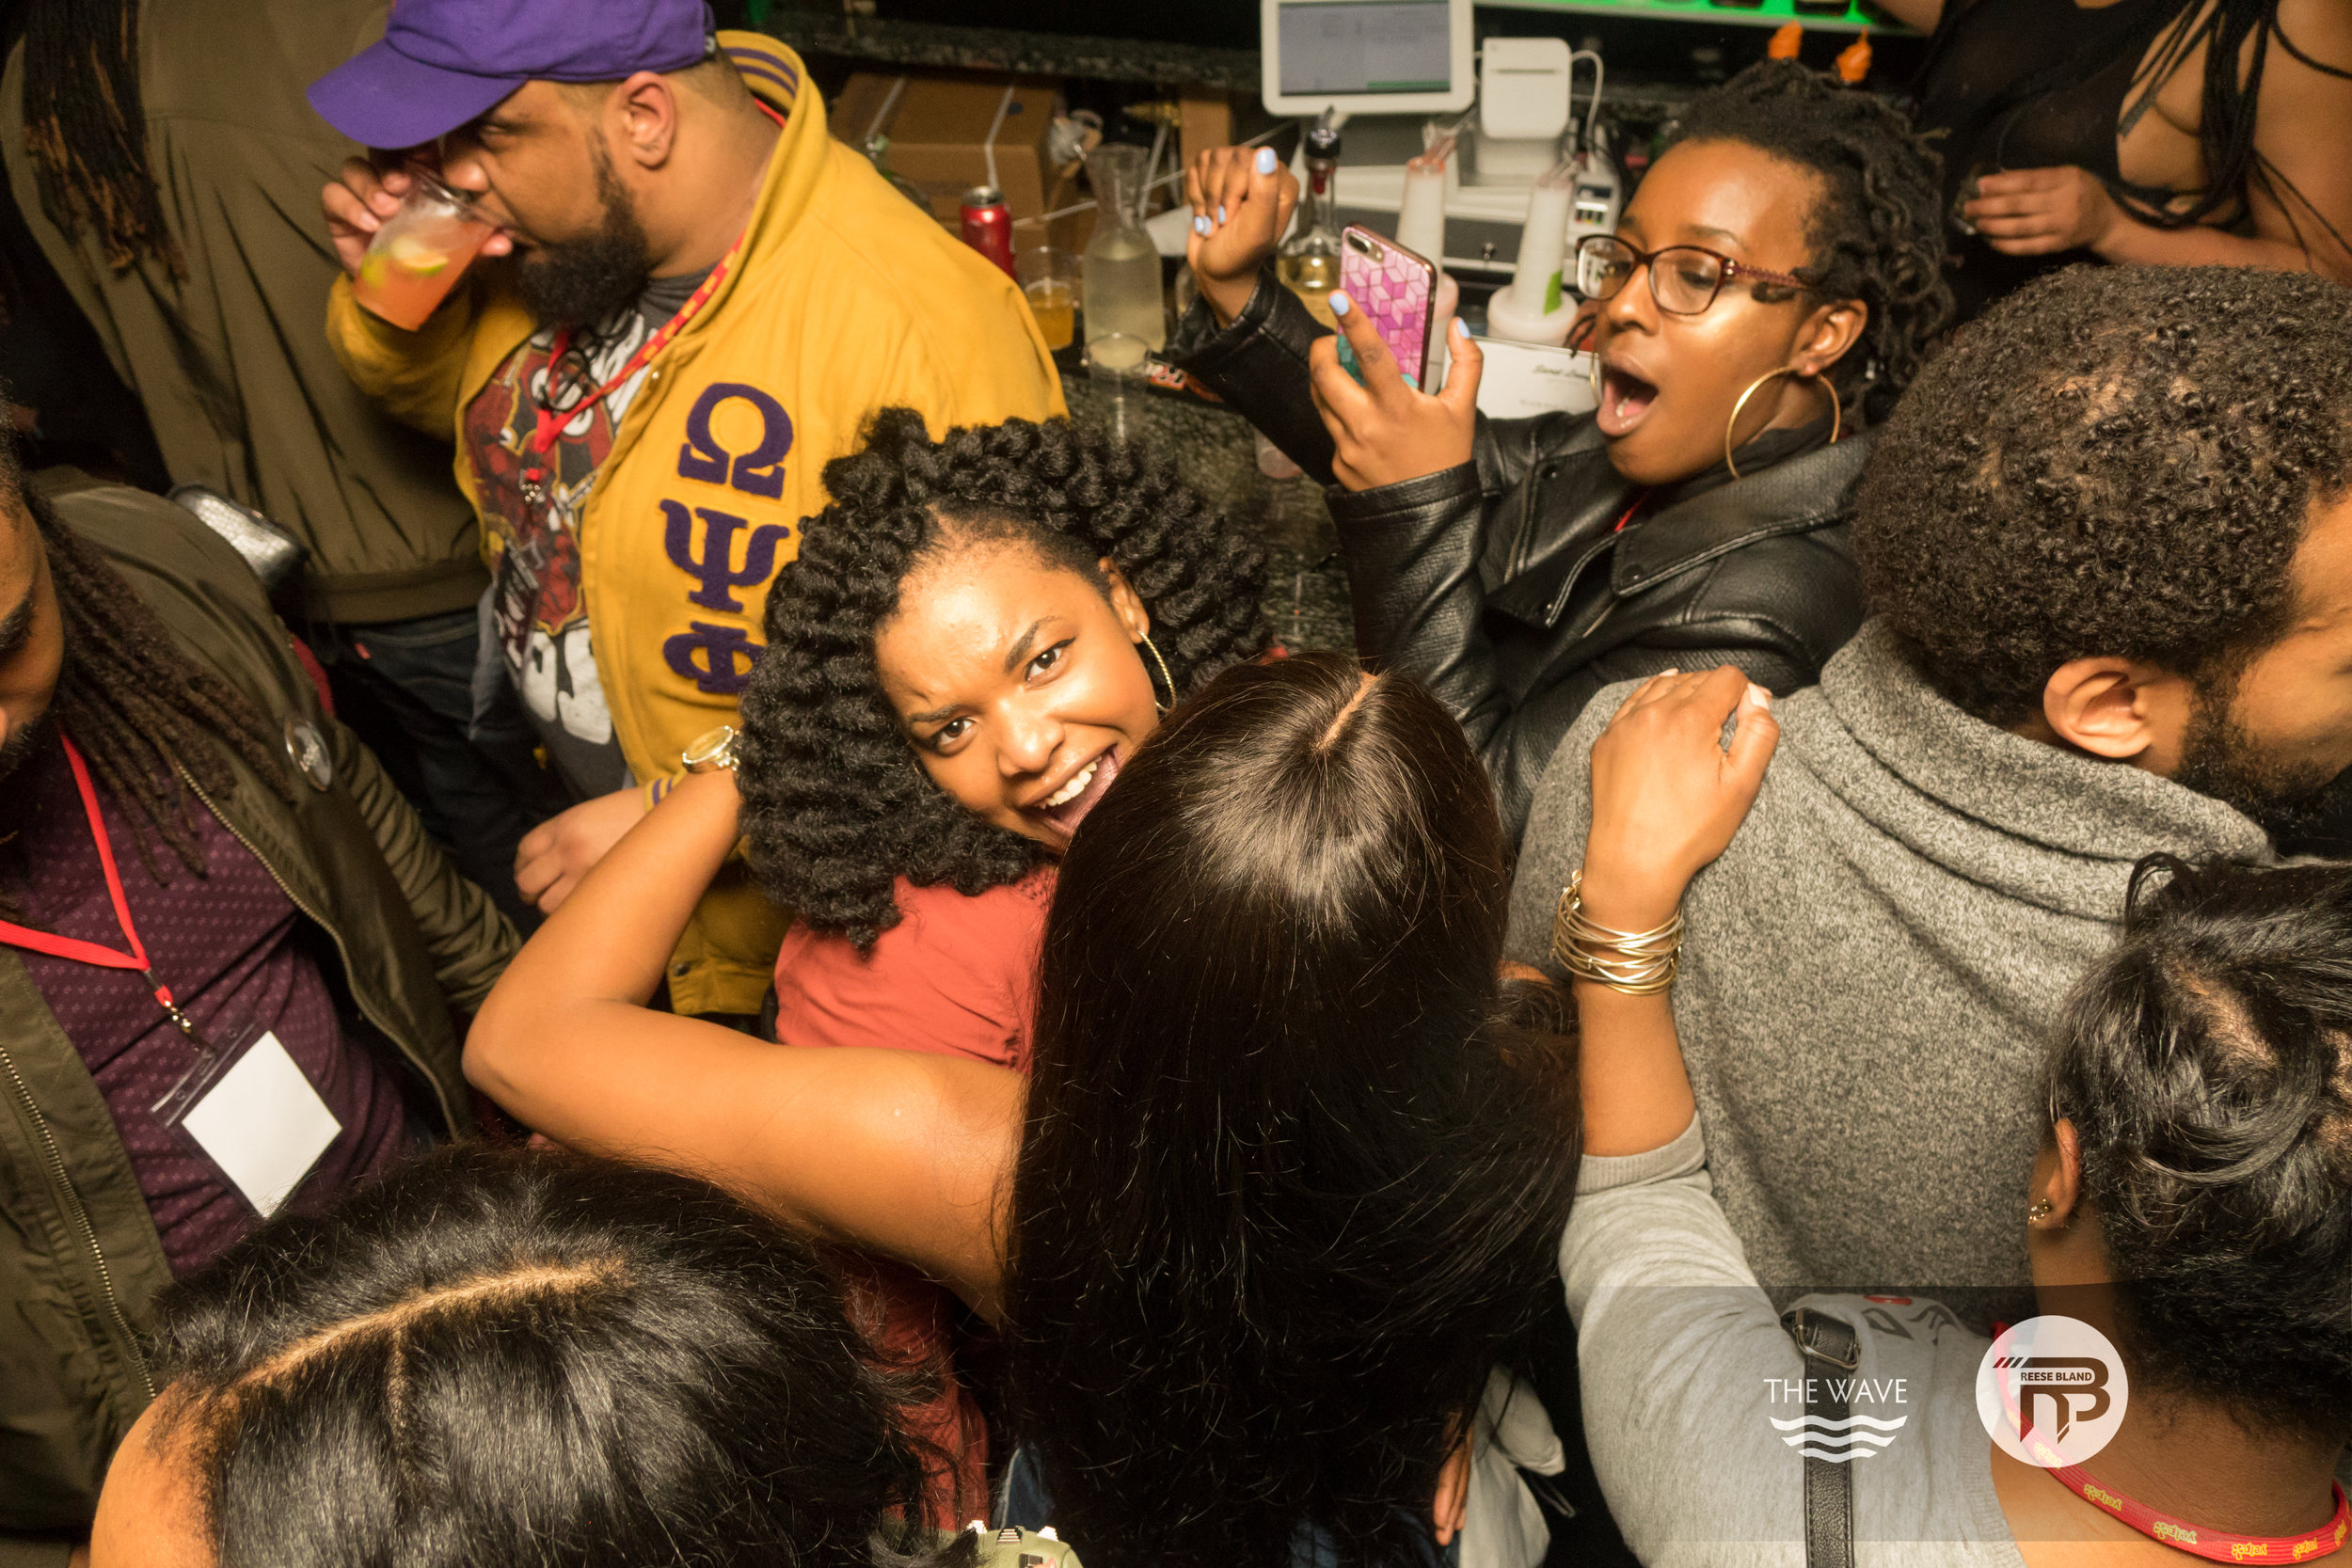 WaveDC-BlackBarCrawl-2-2018-07002.jpg